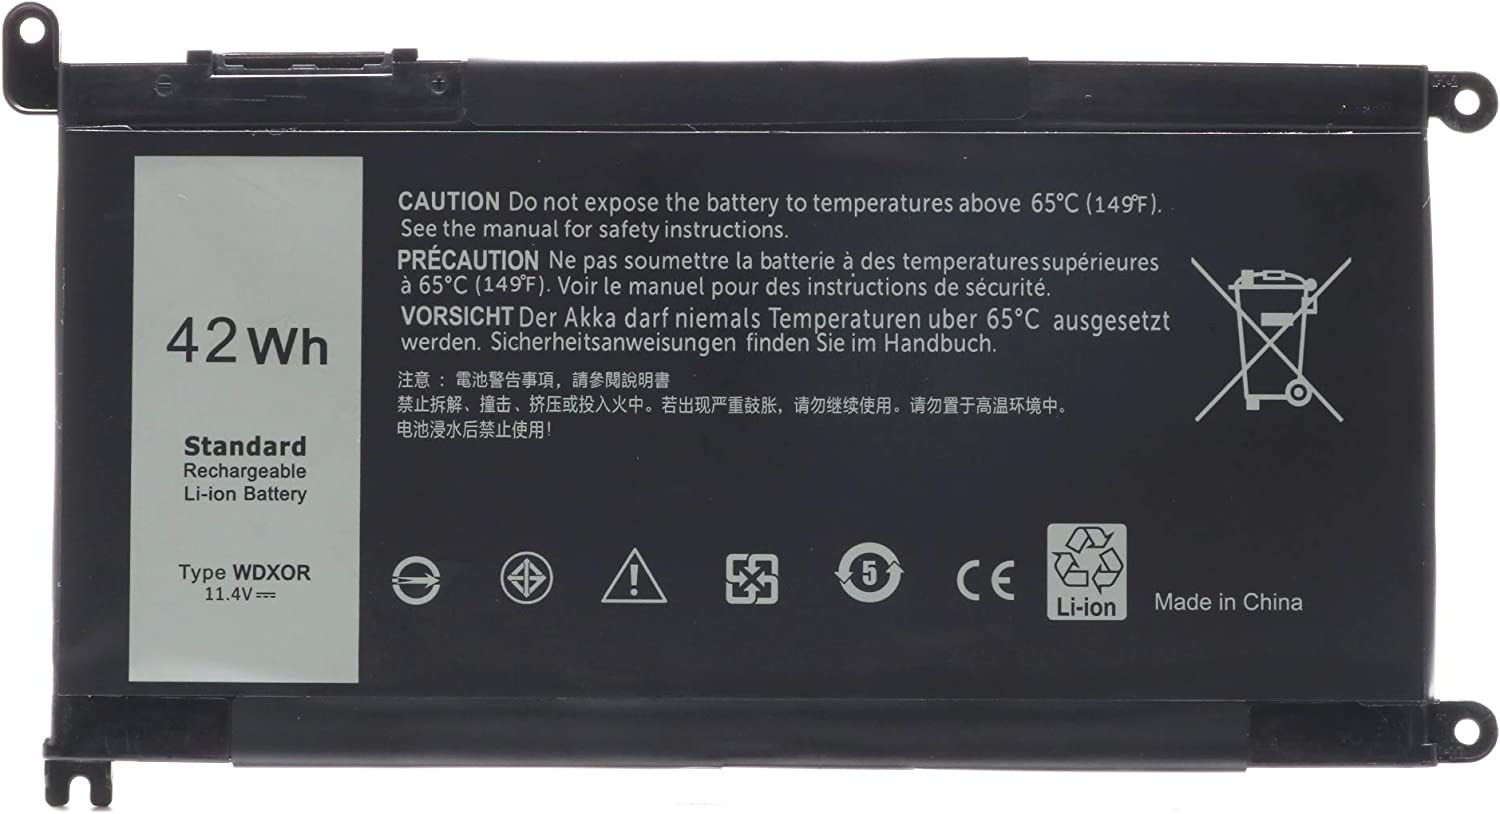 42WH WDXOR 11.4V Battery Replace for Dell Inspiron 13 7378 13 5000 5378 5368 15 7579 5567 5568 5578 7570 7569 Inspiron 5000 7000 17 5000 Series Laptop